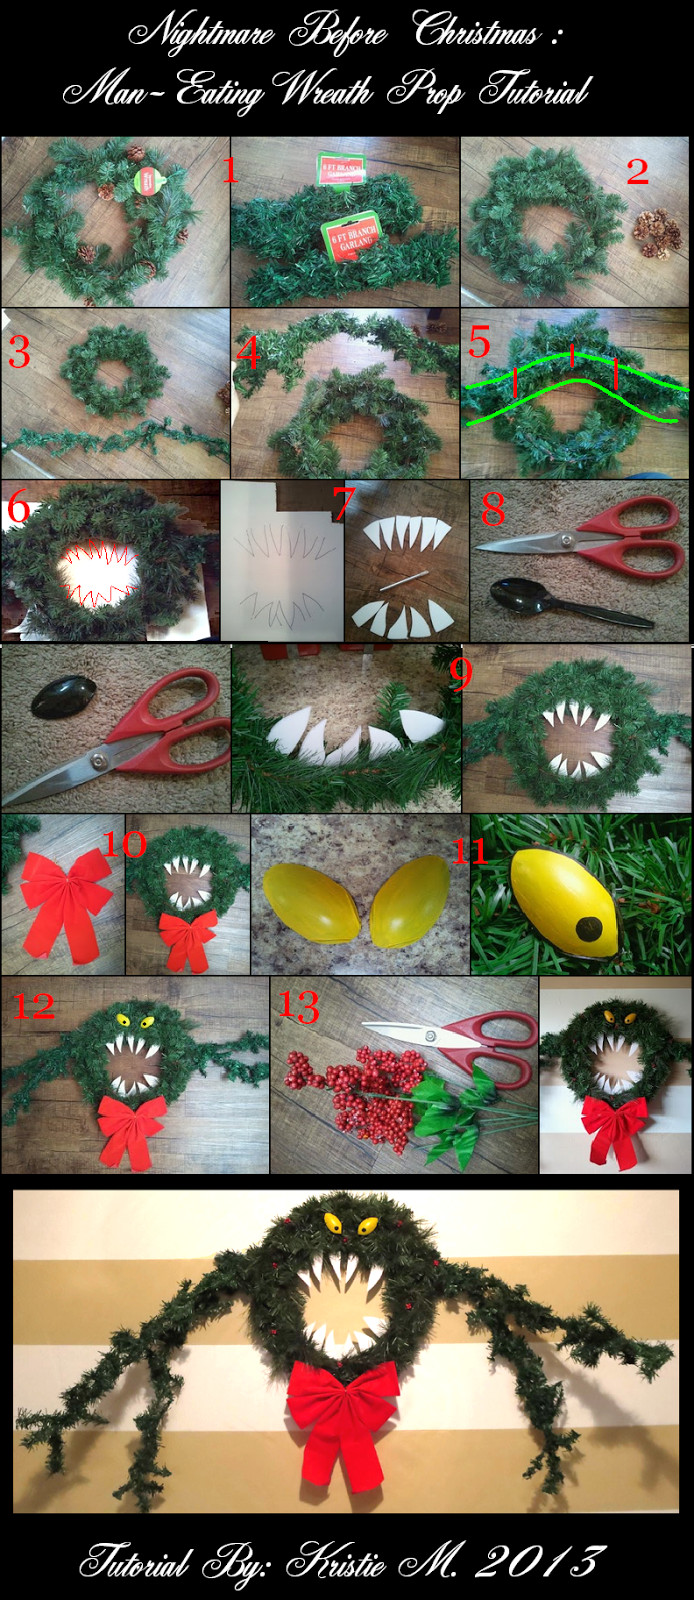 Best ideas about DIY Nightmare Before Christmas . Save or Pin DIY Nightmare Before Christmas Wreath s Now.